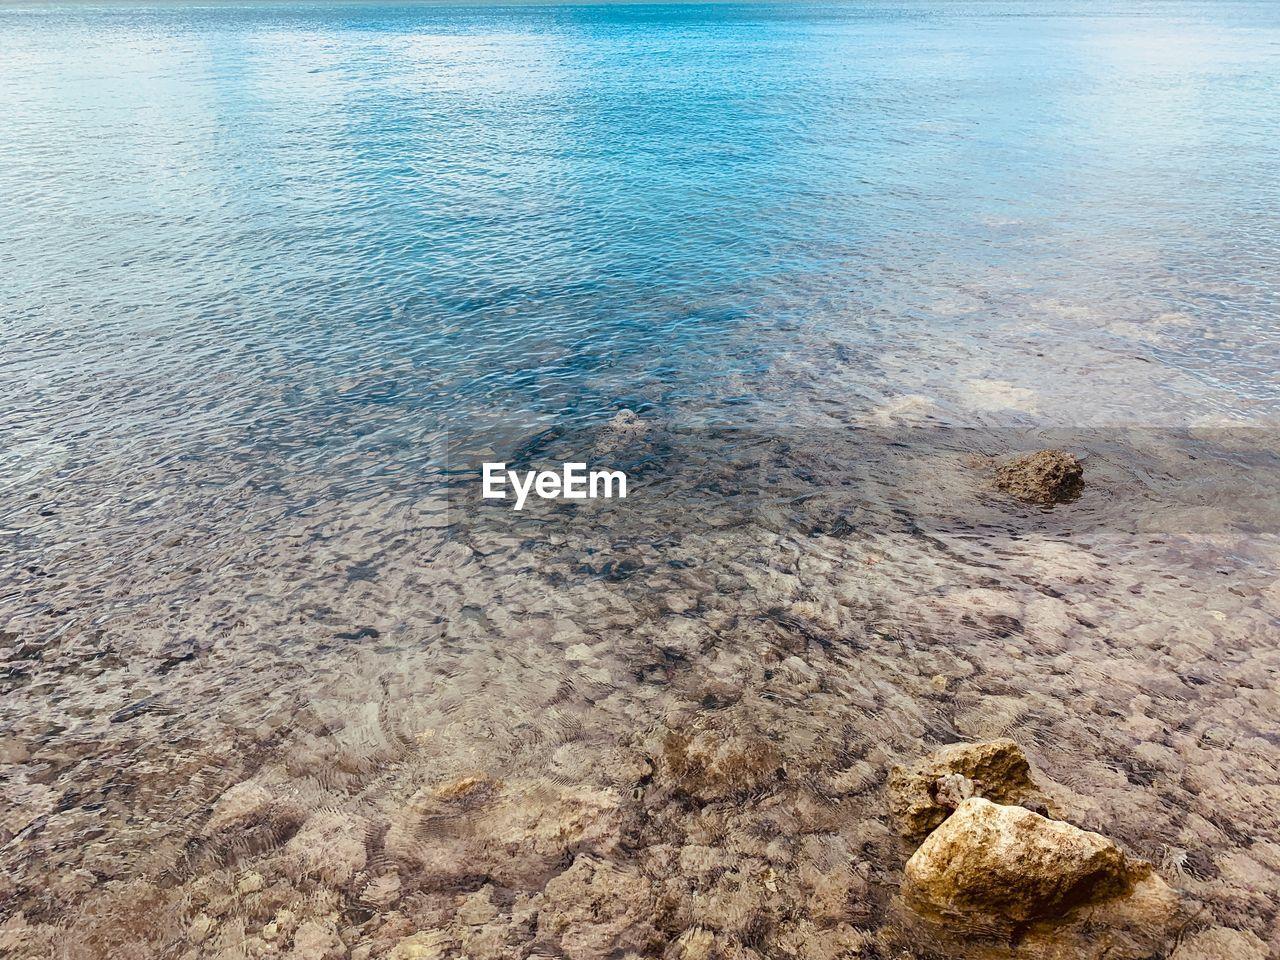 water, sea, tranquility, beauty in nature, rock, no people, day, nature, scenics - nature, tranquil scene, rock - object, solid, land, beach, high angle view, outdoors, idyllic, shallow, transparent, purity, rocky coastline